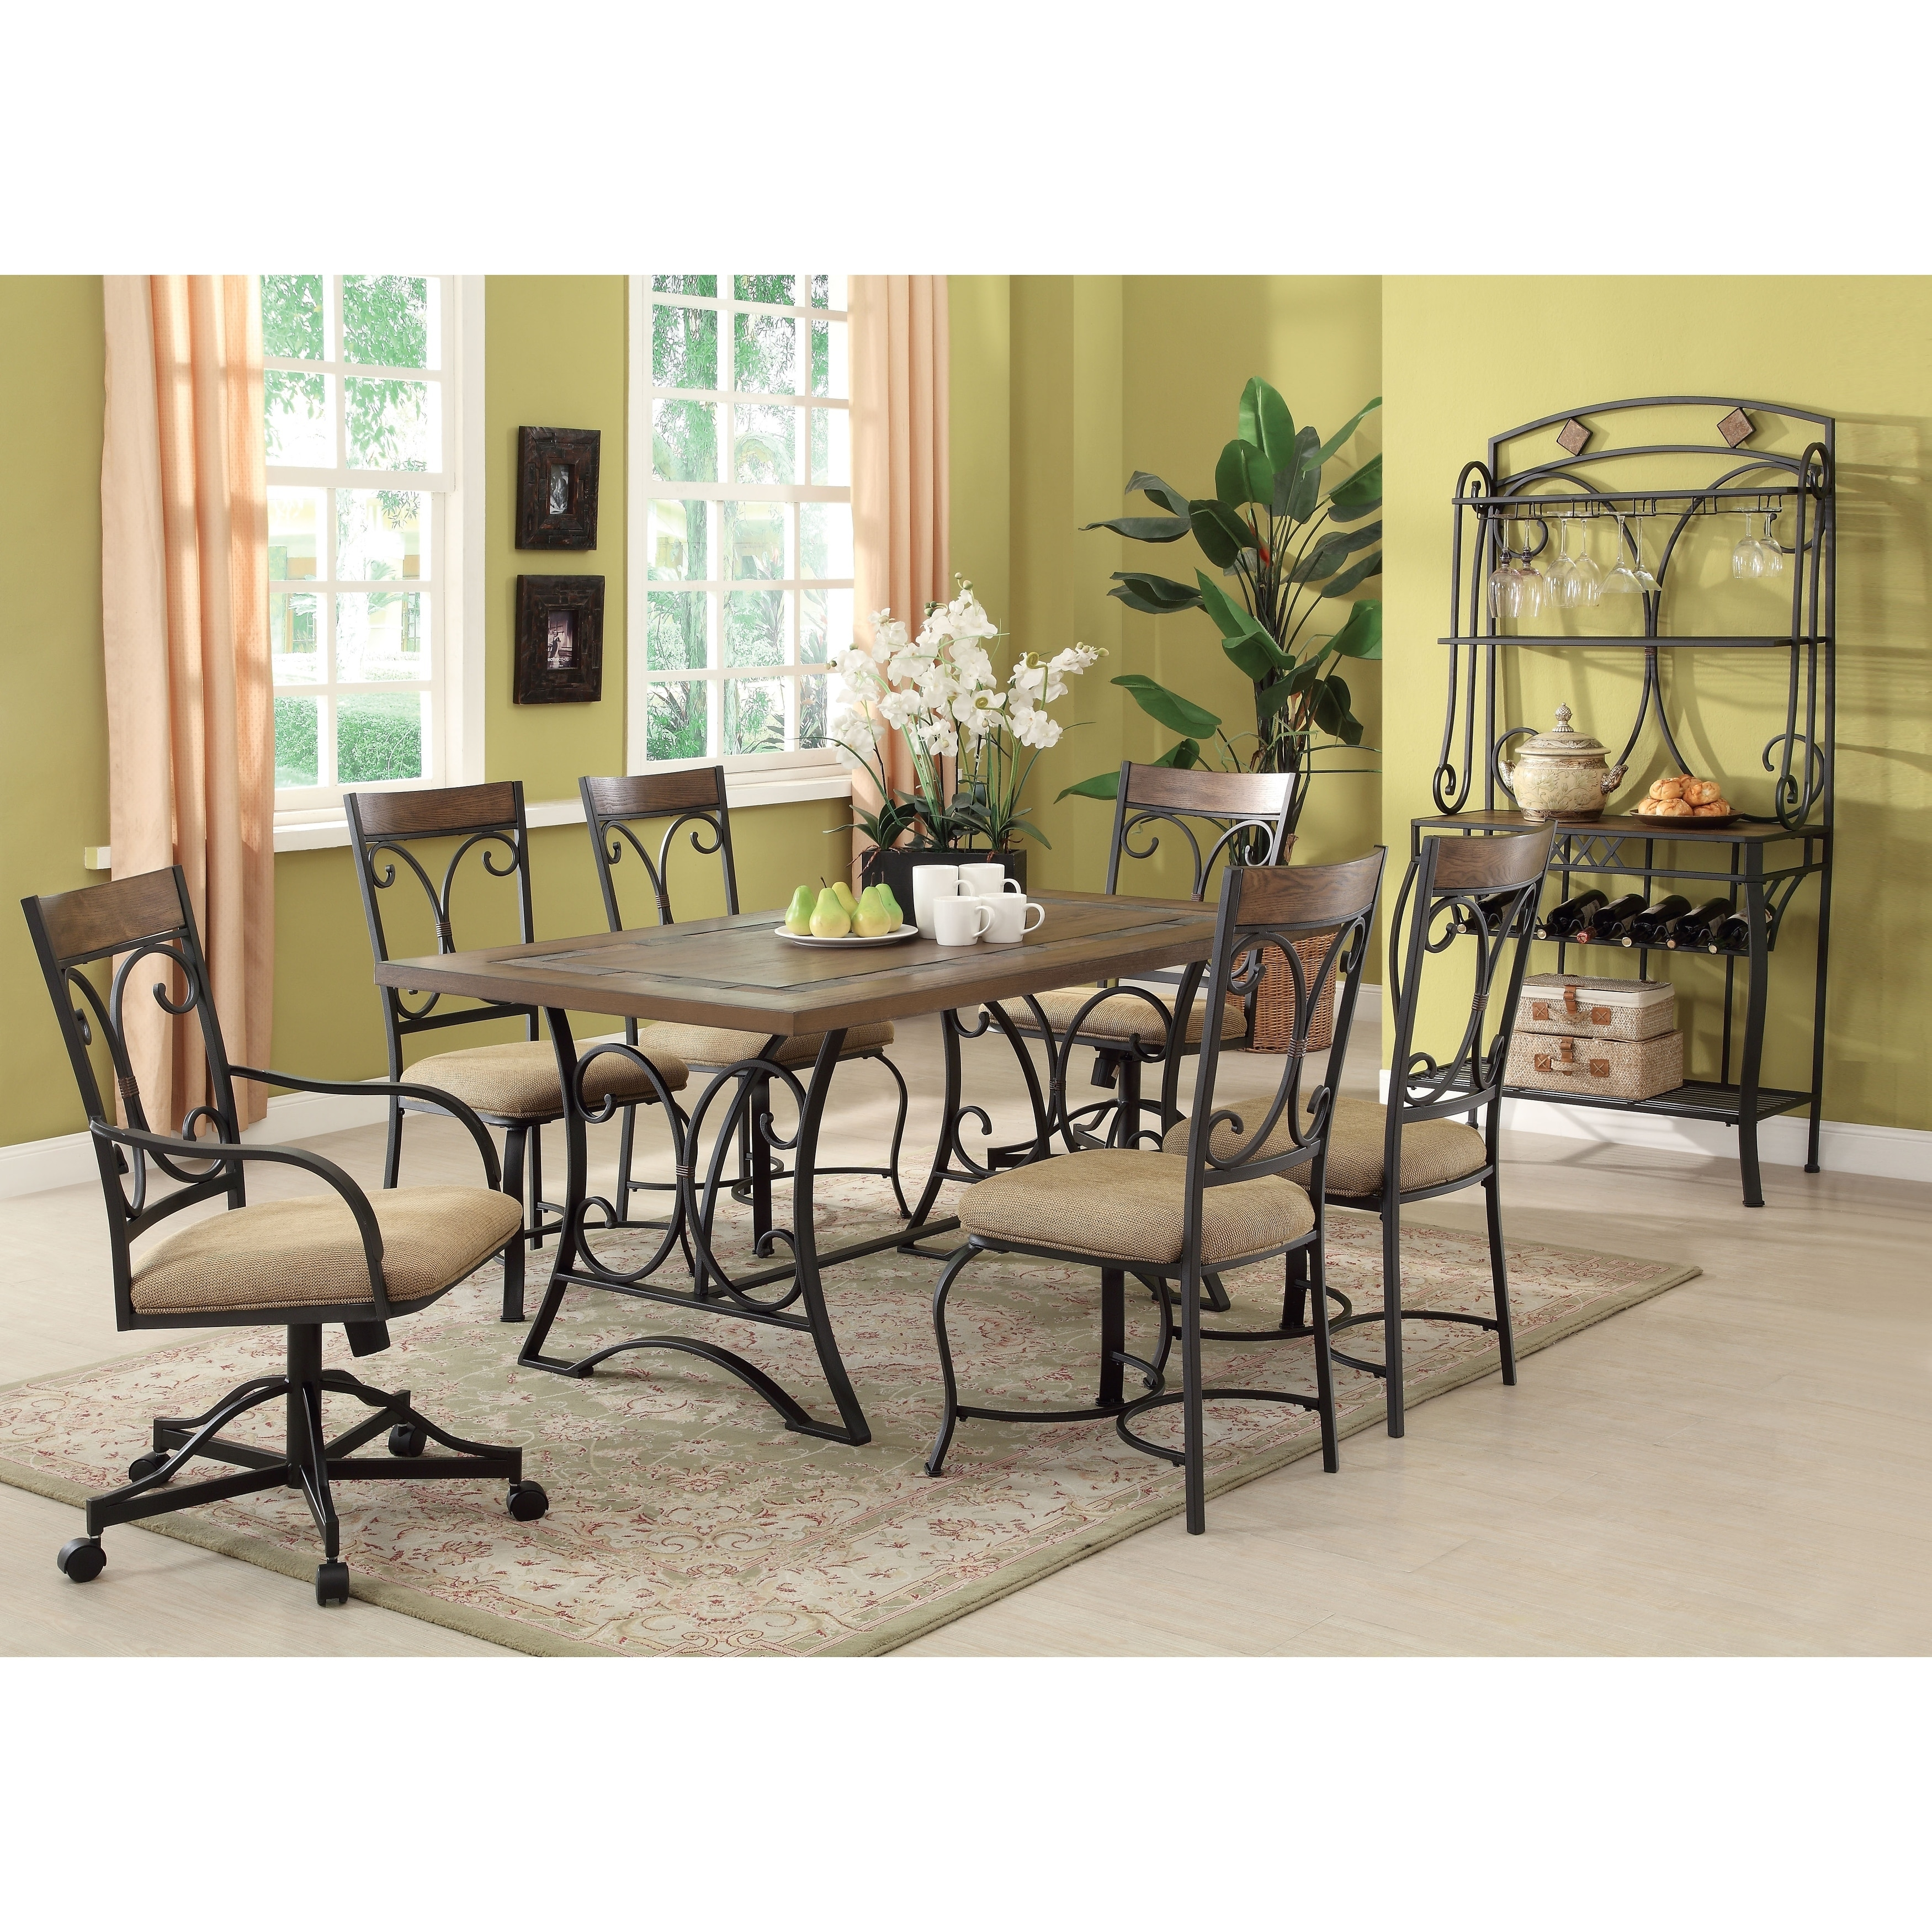 Wood And Metal Dining Table With Inlaid Slate Border Black And Brown Overstock 28001605